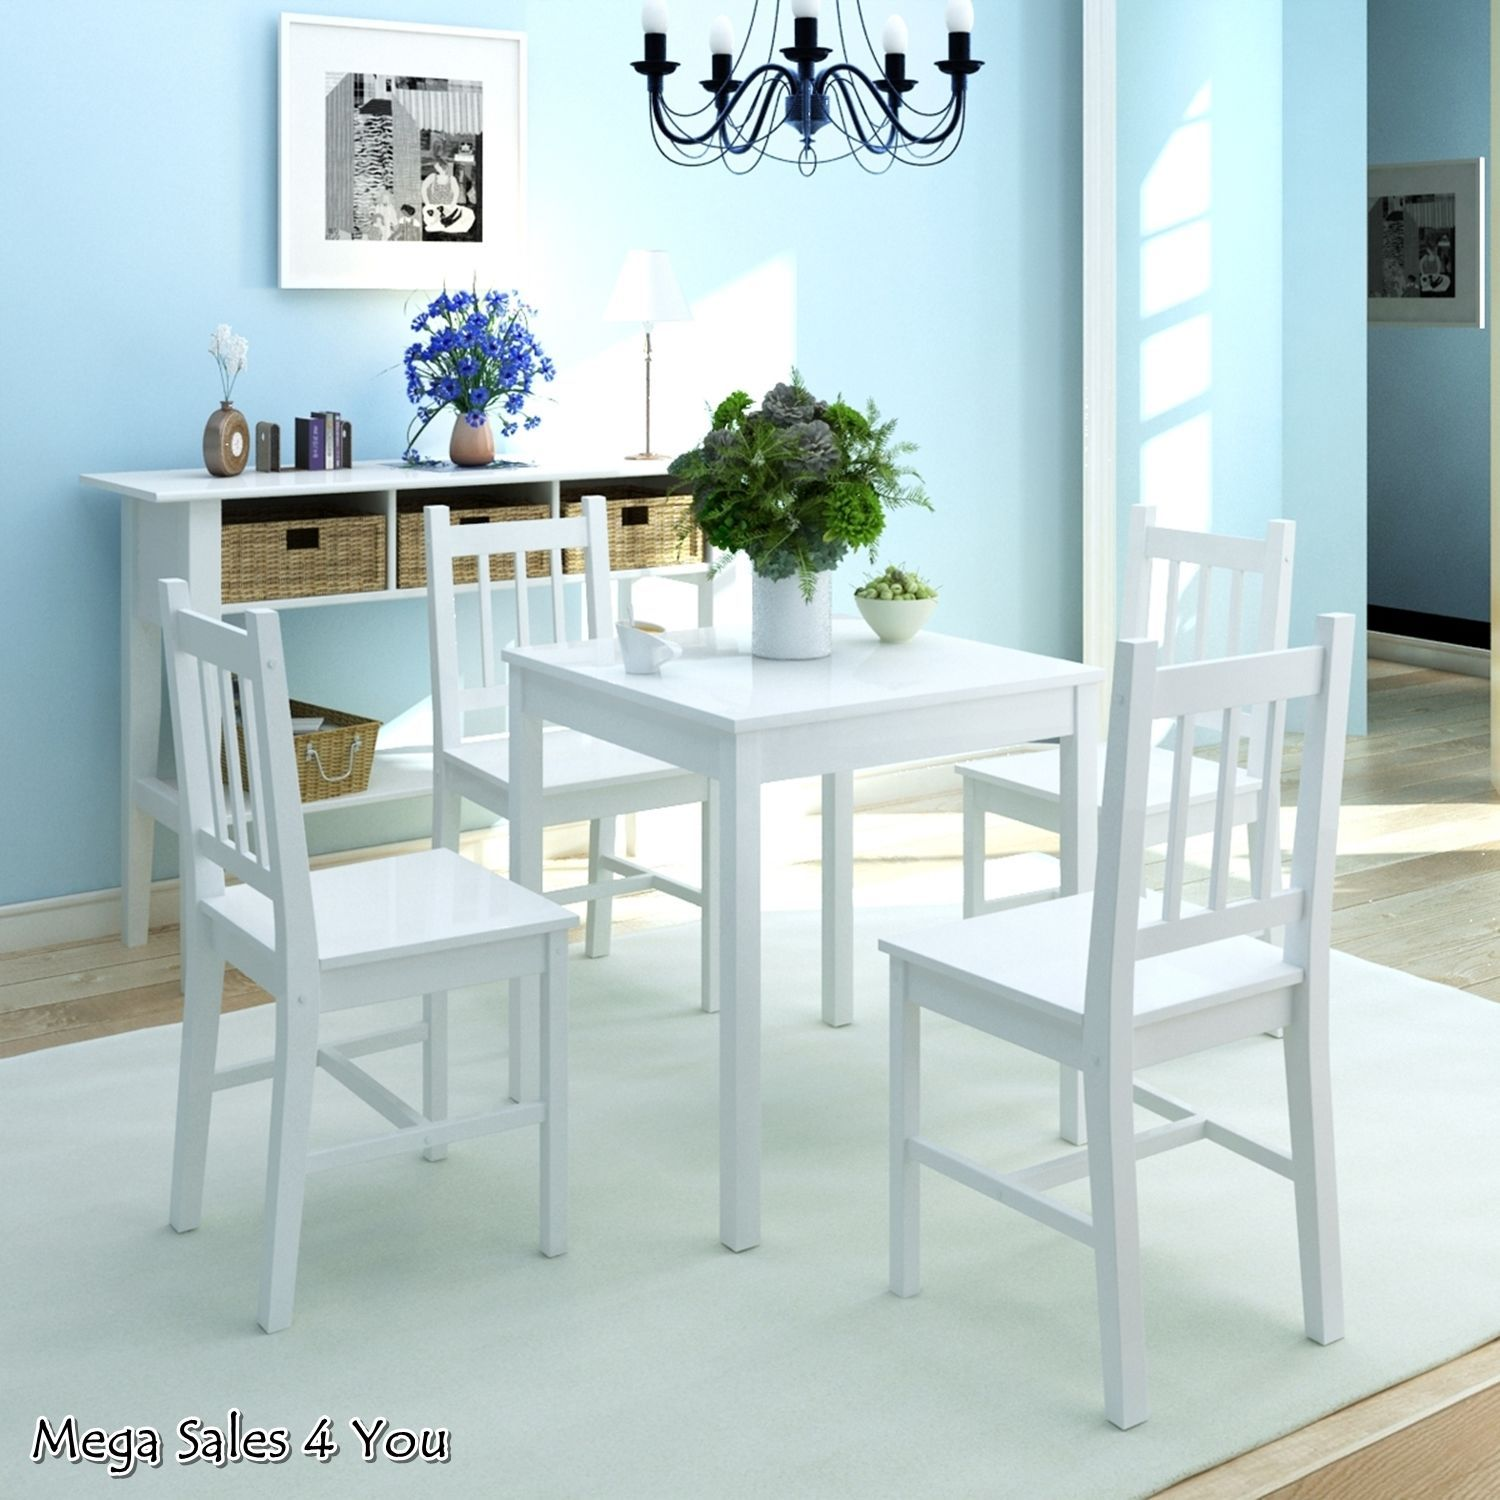 White Wooden Dining Set Square Table 4 Chairs Pine Wood ...